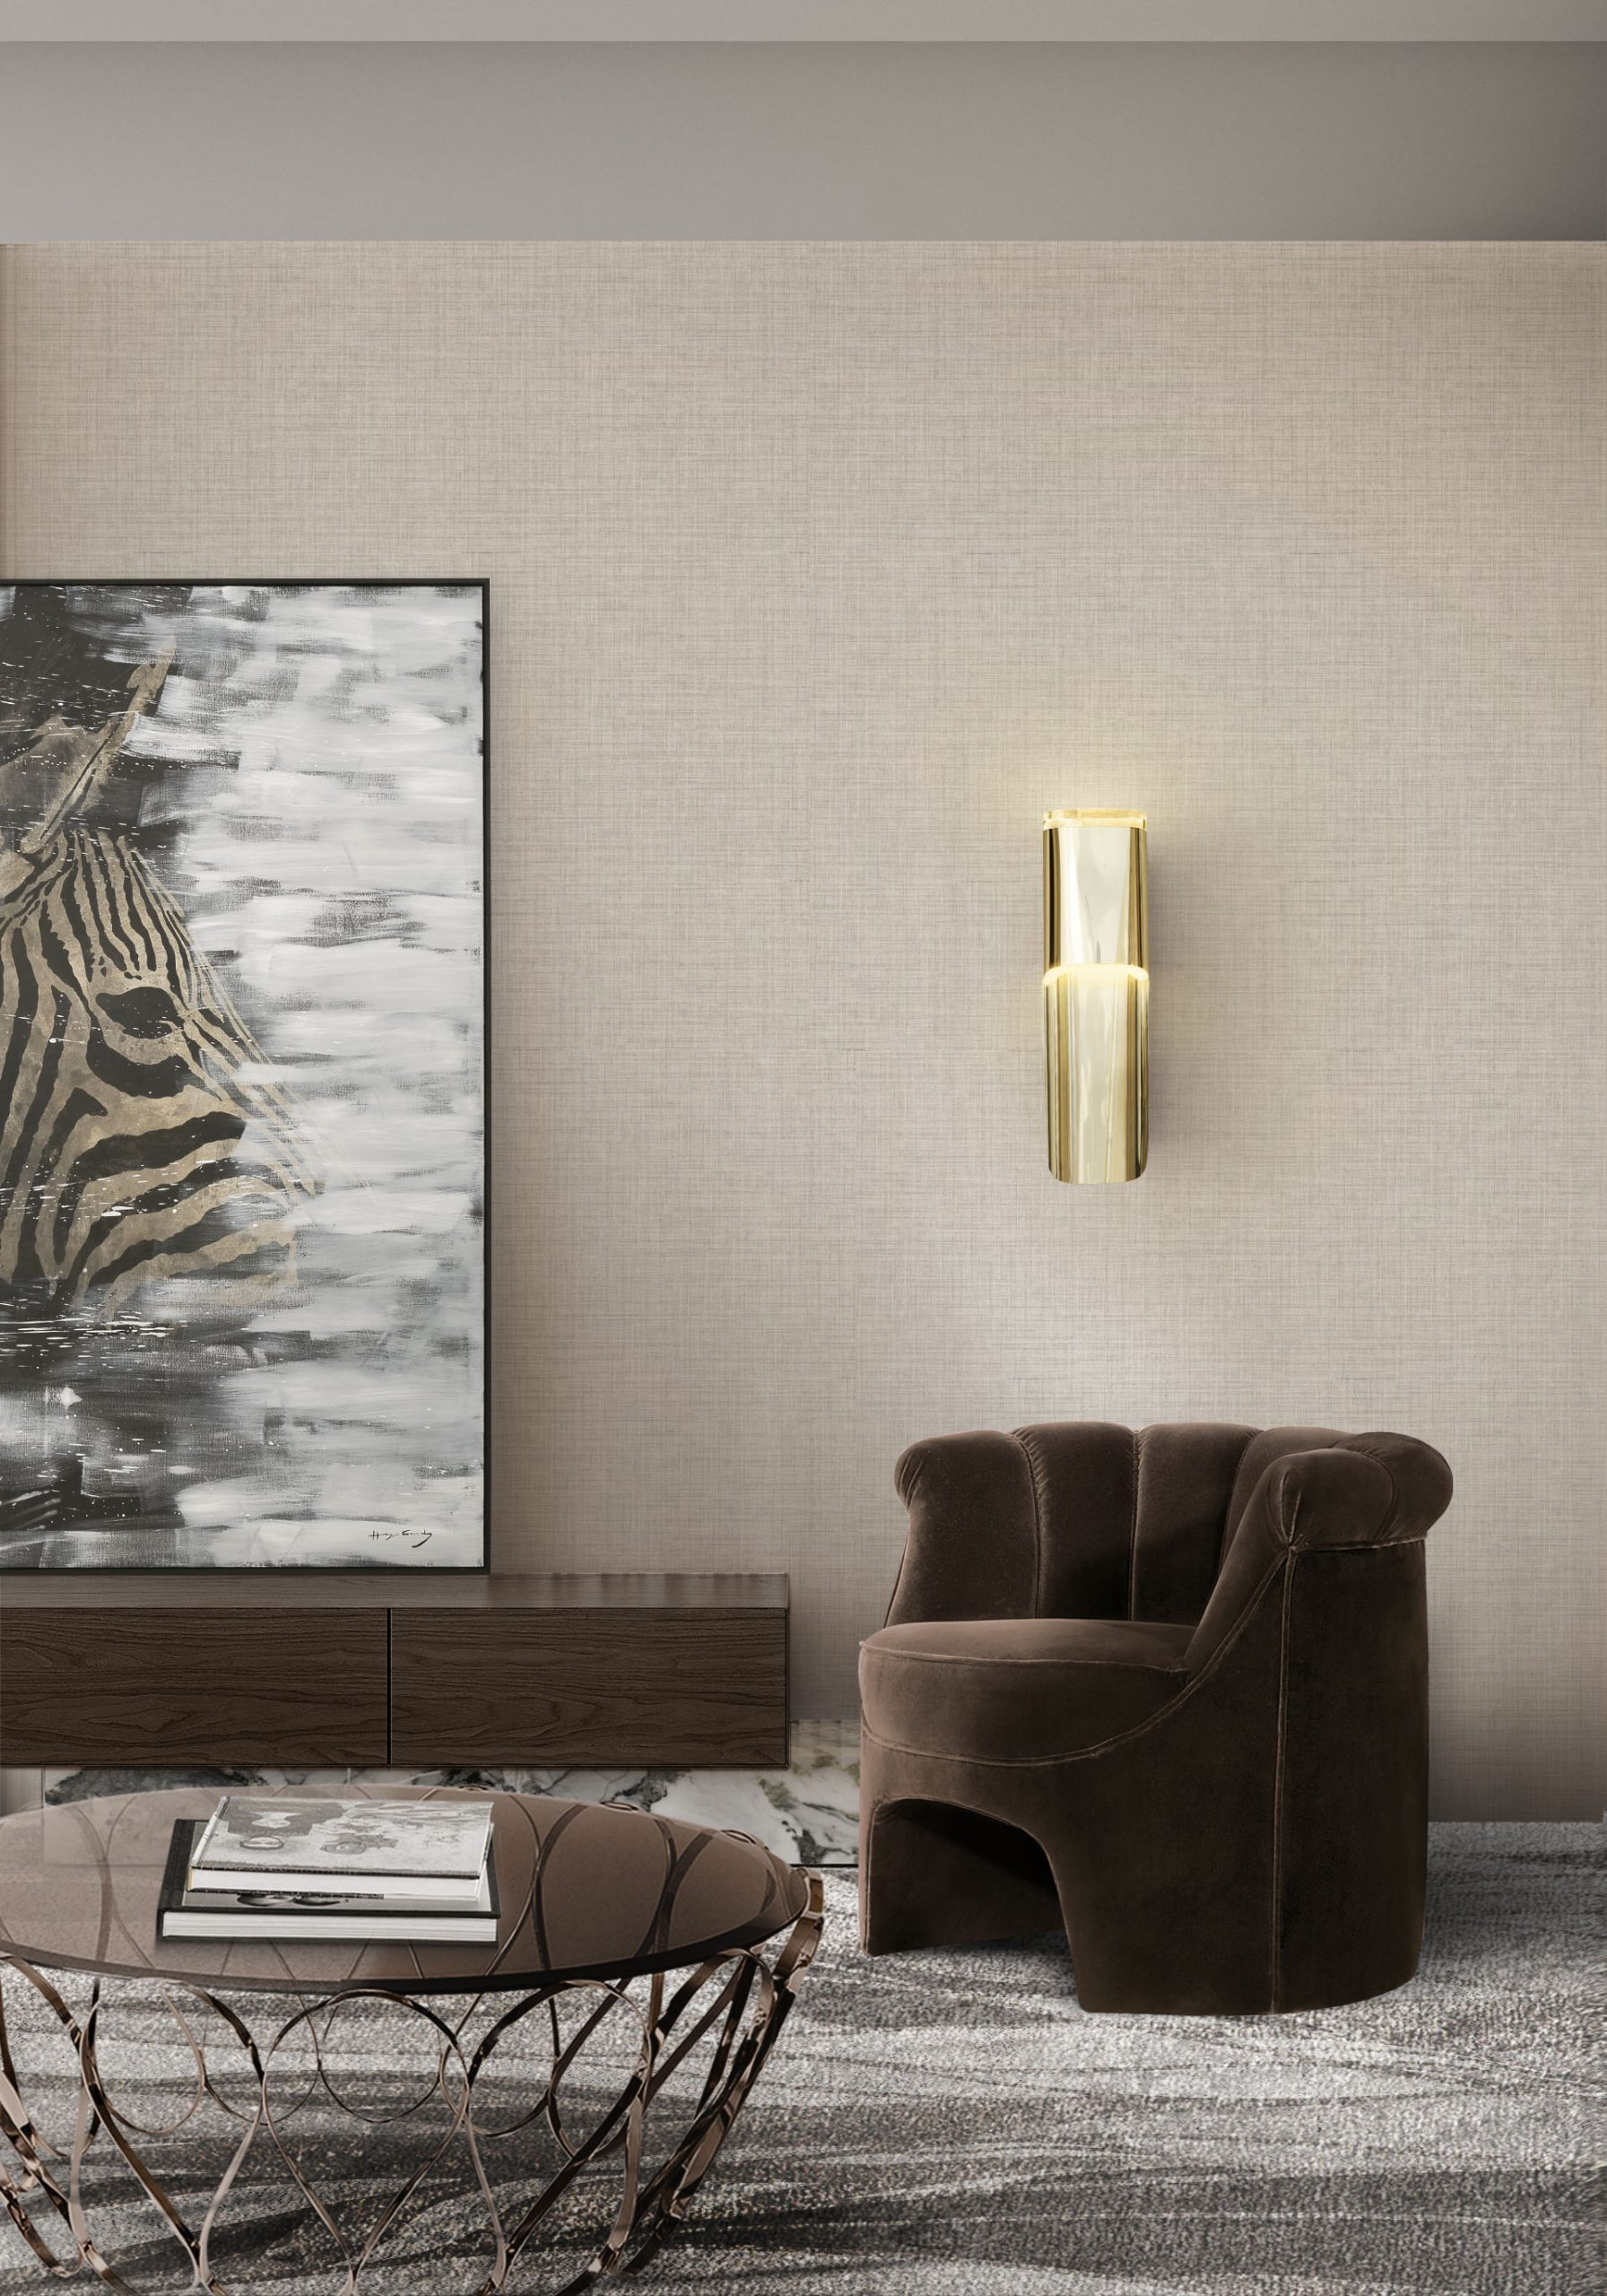 Monochromatic Look: How To Create Modern Rooms With One Colour monochromatic look Monochromatic Look: How To Create Modern Rooms With One Colour BB phong wall light hera armchair scaled